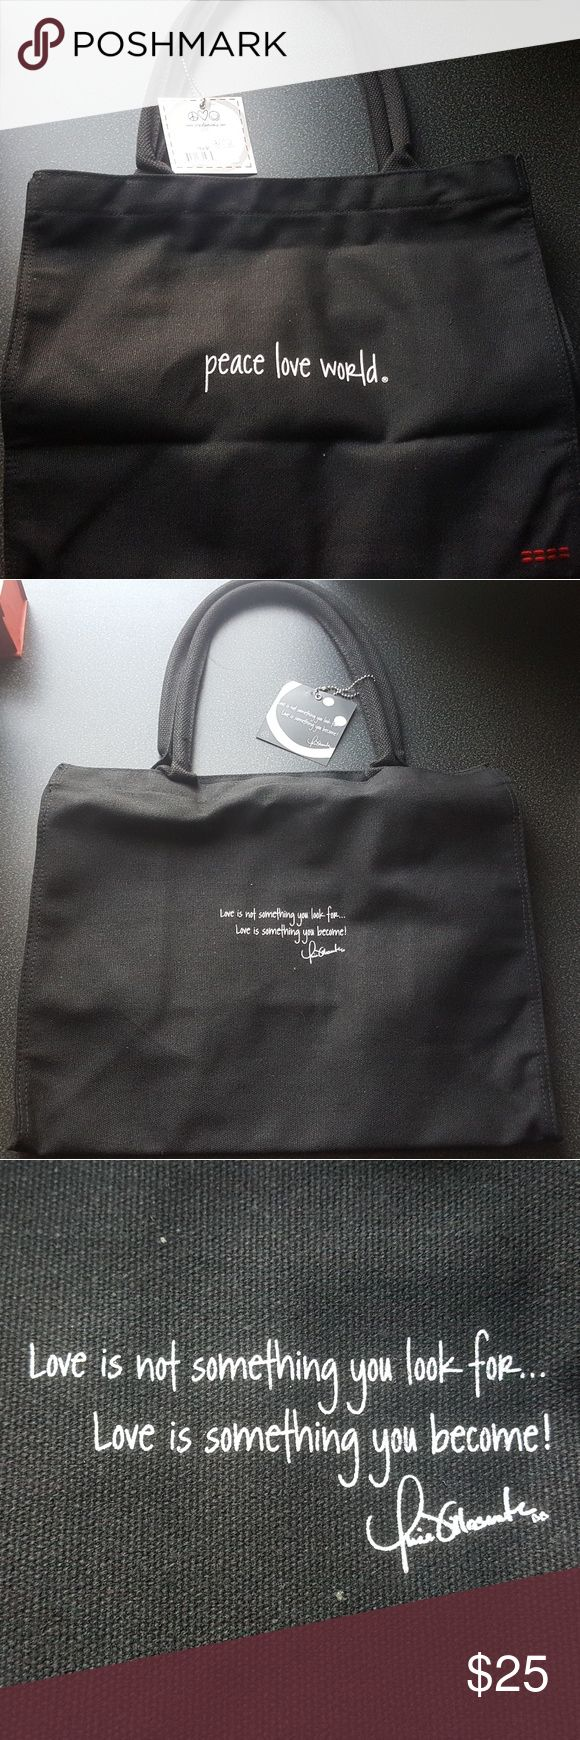 Peace Love World, CANVAS TOTE BAG W/ Gift Brand new never been used with original tag.       GIFT: 3 Bracelets PLW or 1 PLW sticker of your choice. SKU: 6089001-BLACK-LVRIDE-0/S Peace Love World  Bags Totes